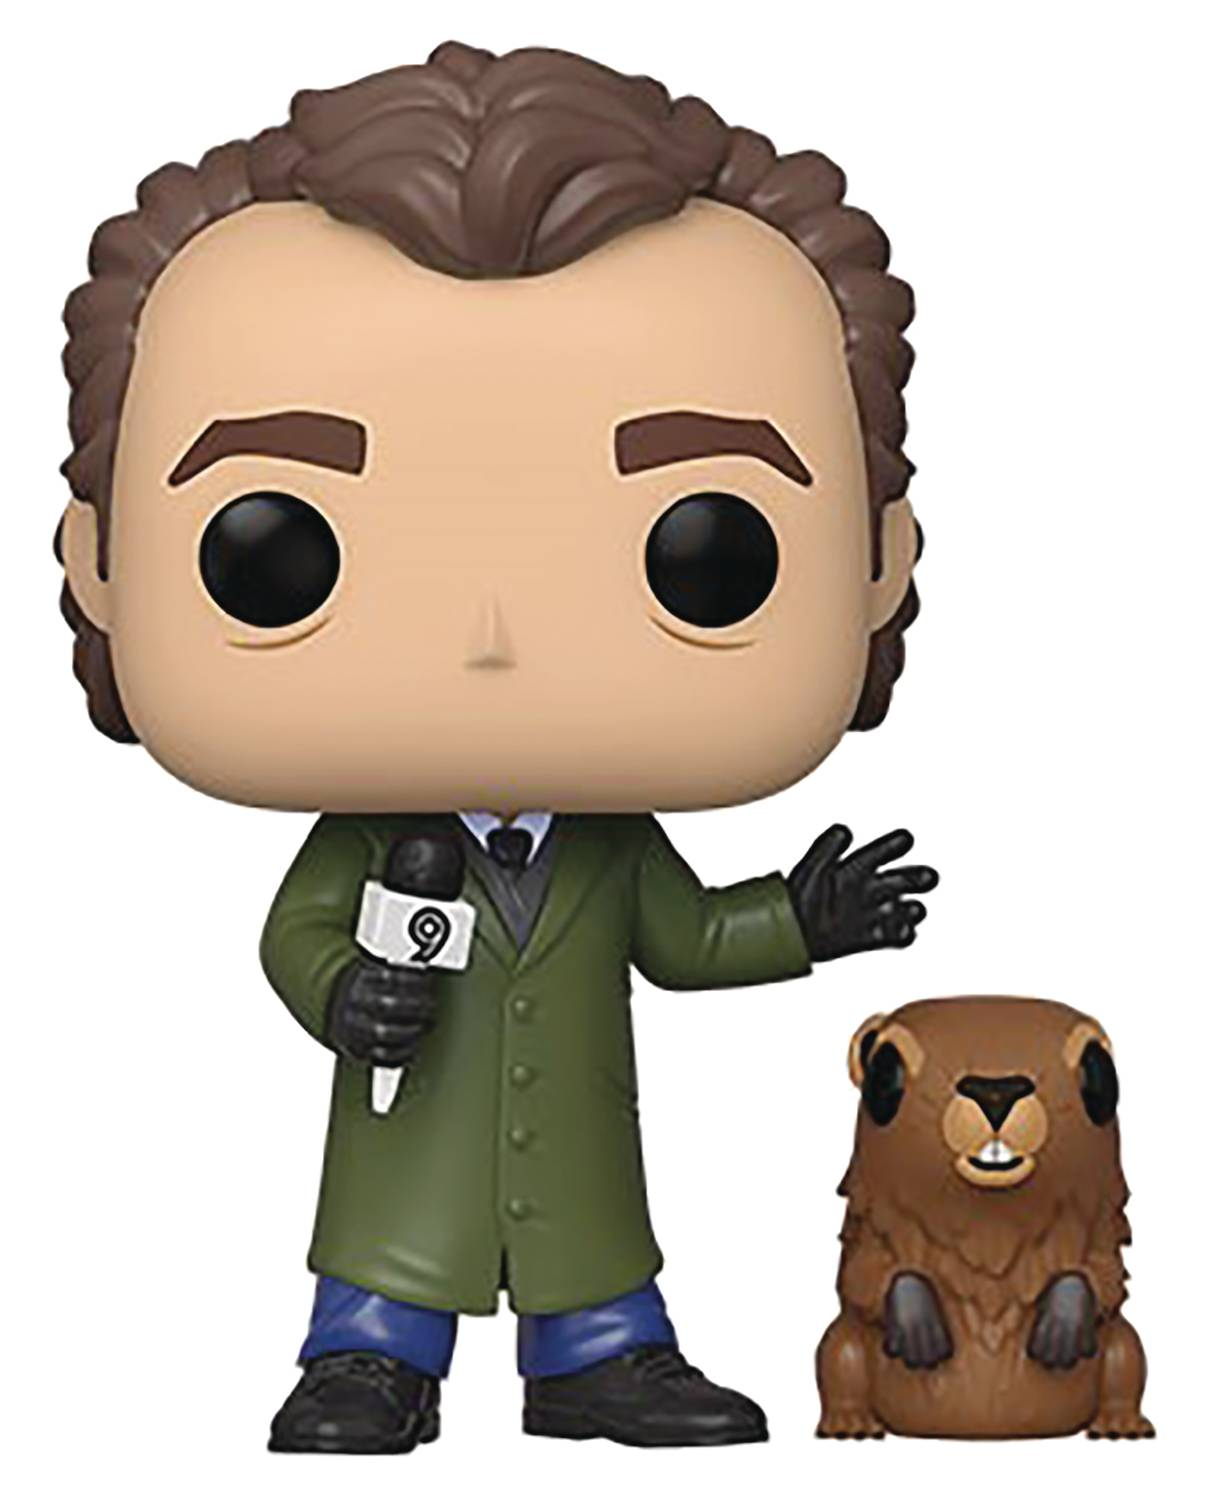 POP & BUDDY PHIL W/ PUNXSUTAWNEY PHIL VINYL FIG